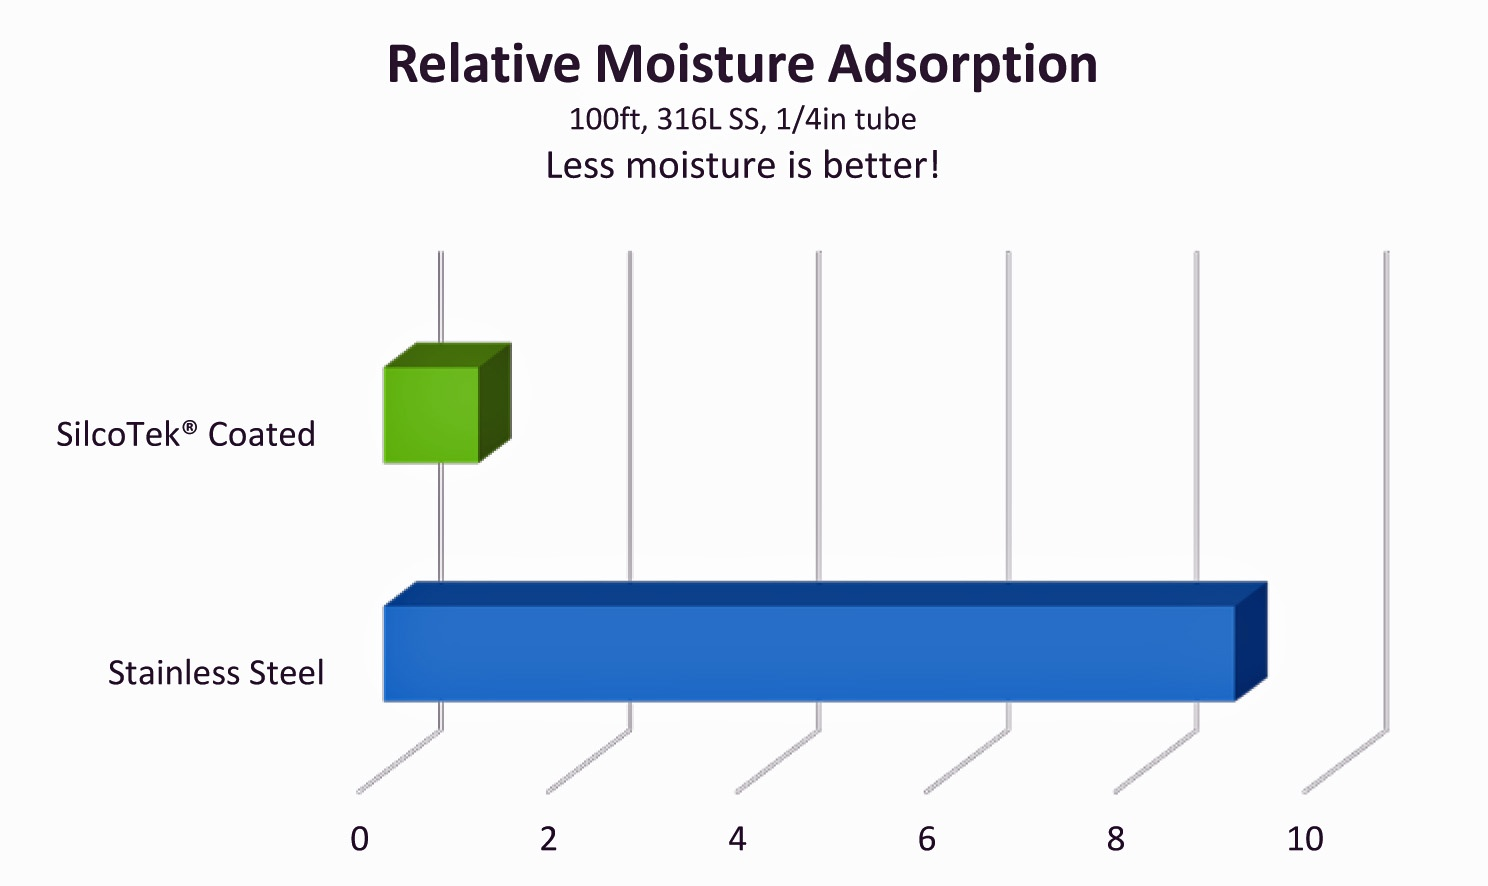 Moisture_adsorption_graph2_10_16_15.jpg